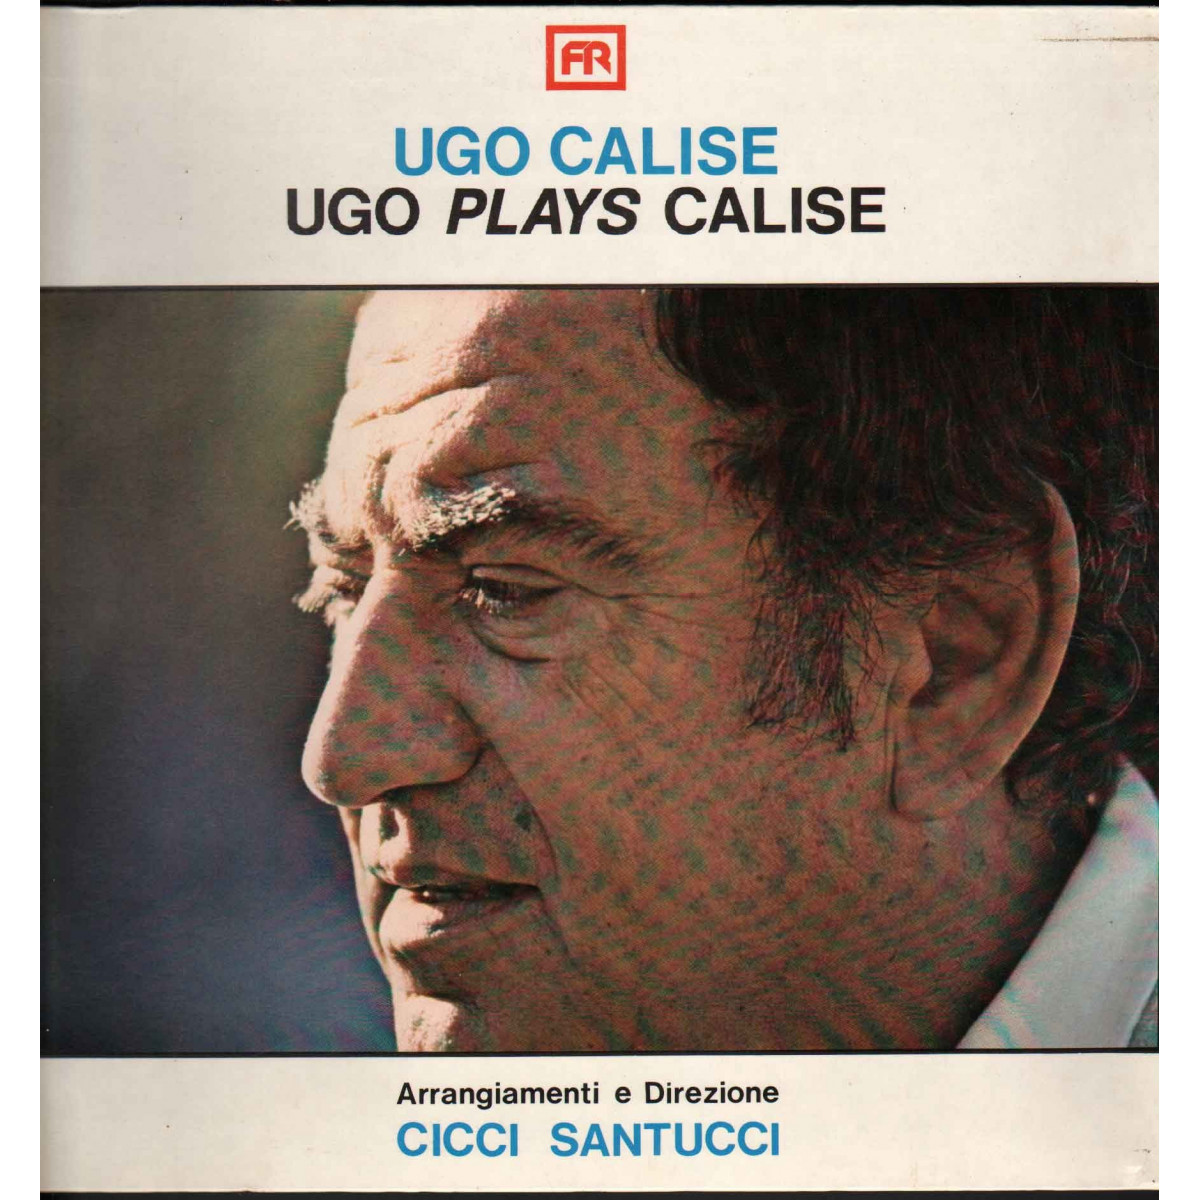 Ugo Calise - Ugo Plays Calise / Fly Record FR003